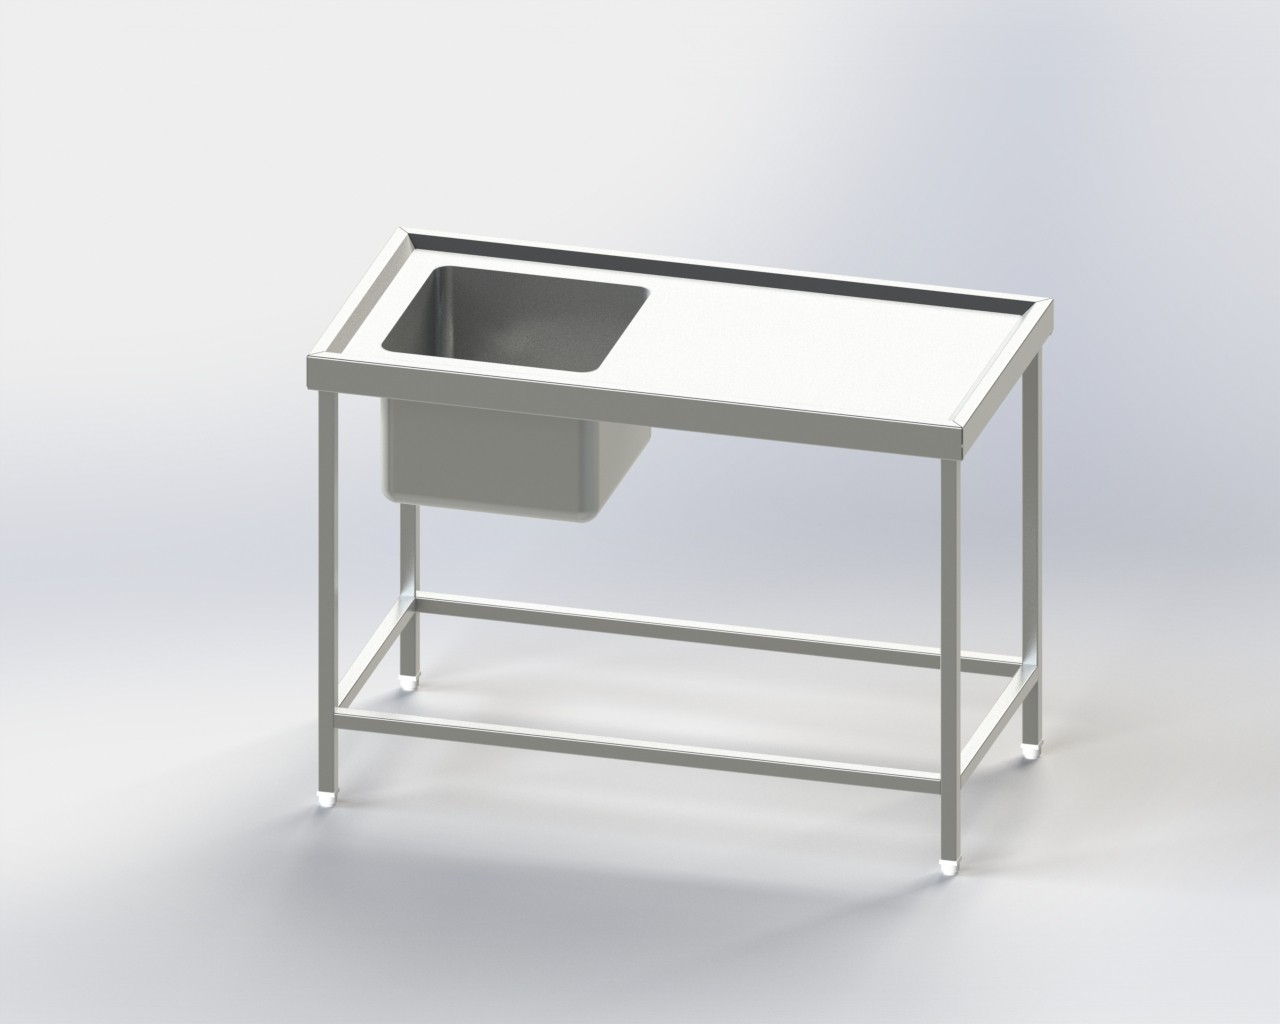 Single Sink Dish Wash Unit